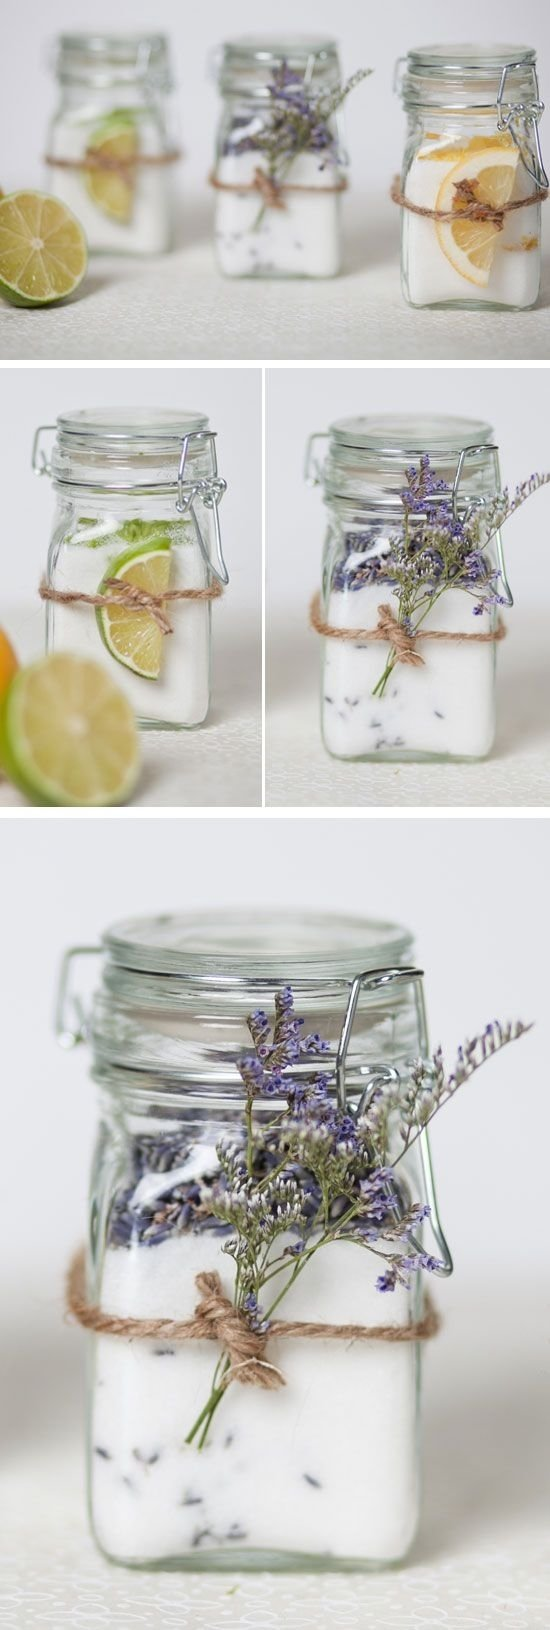 10 Most Recommended Engagement Party Ideas On A Budget 19 best bridal party images on pinterest birthdays party and 2021